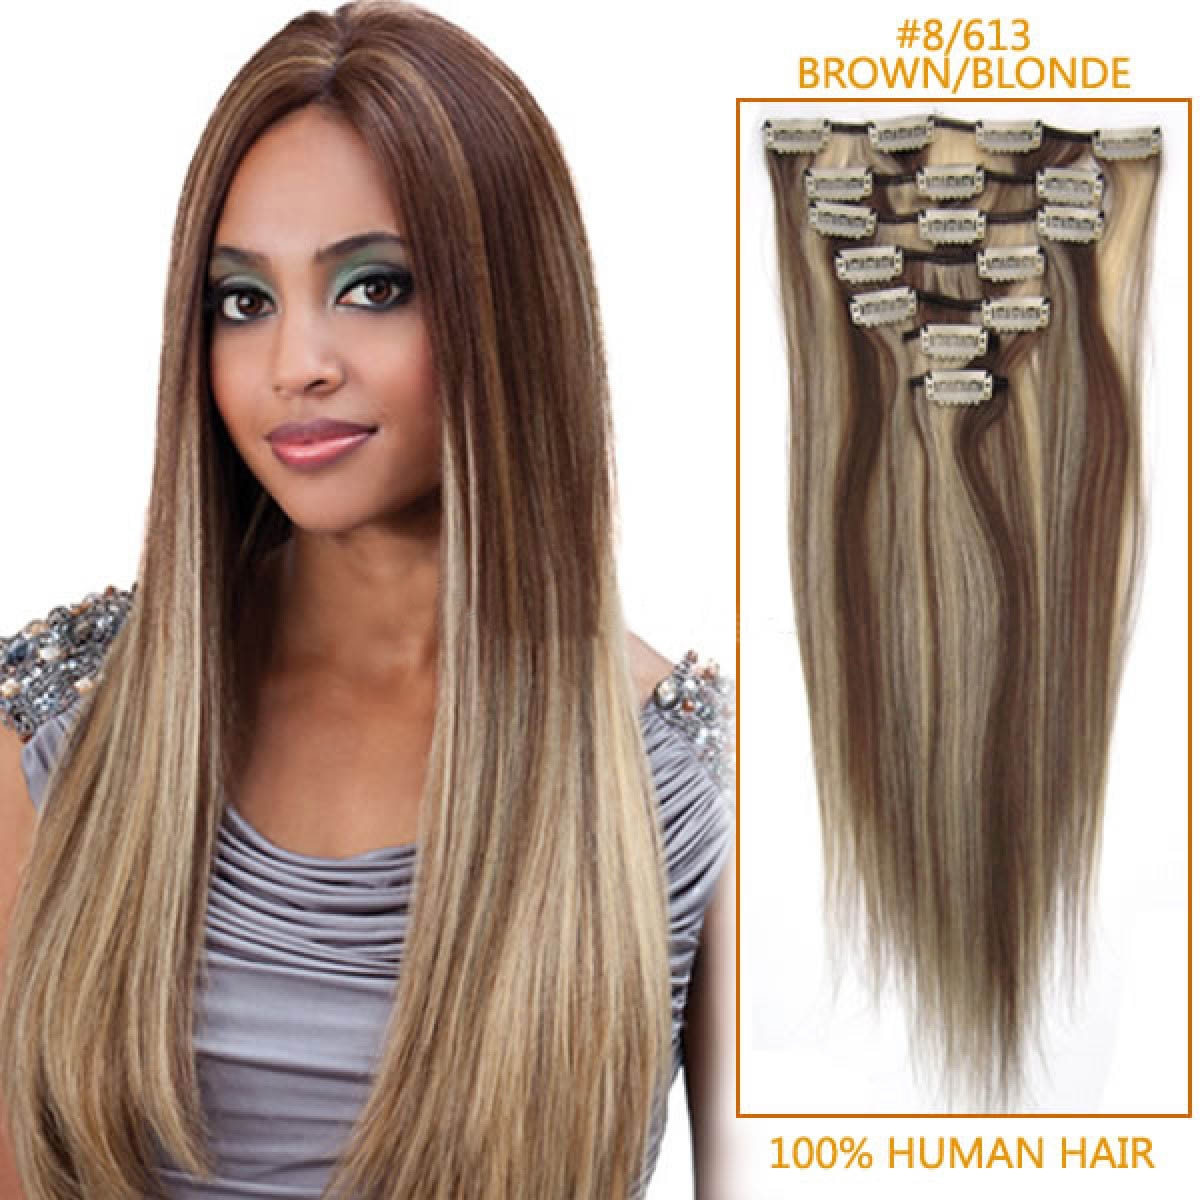 18 Inch 8613 Brownblonde Clip In Human Hair Extensions 8pcs